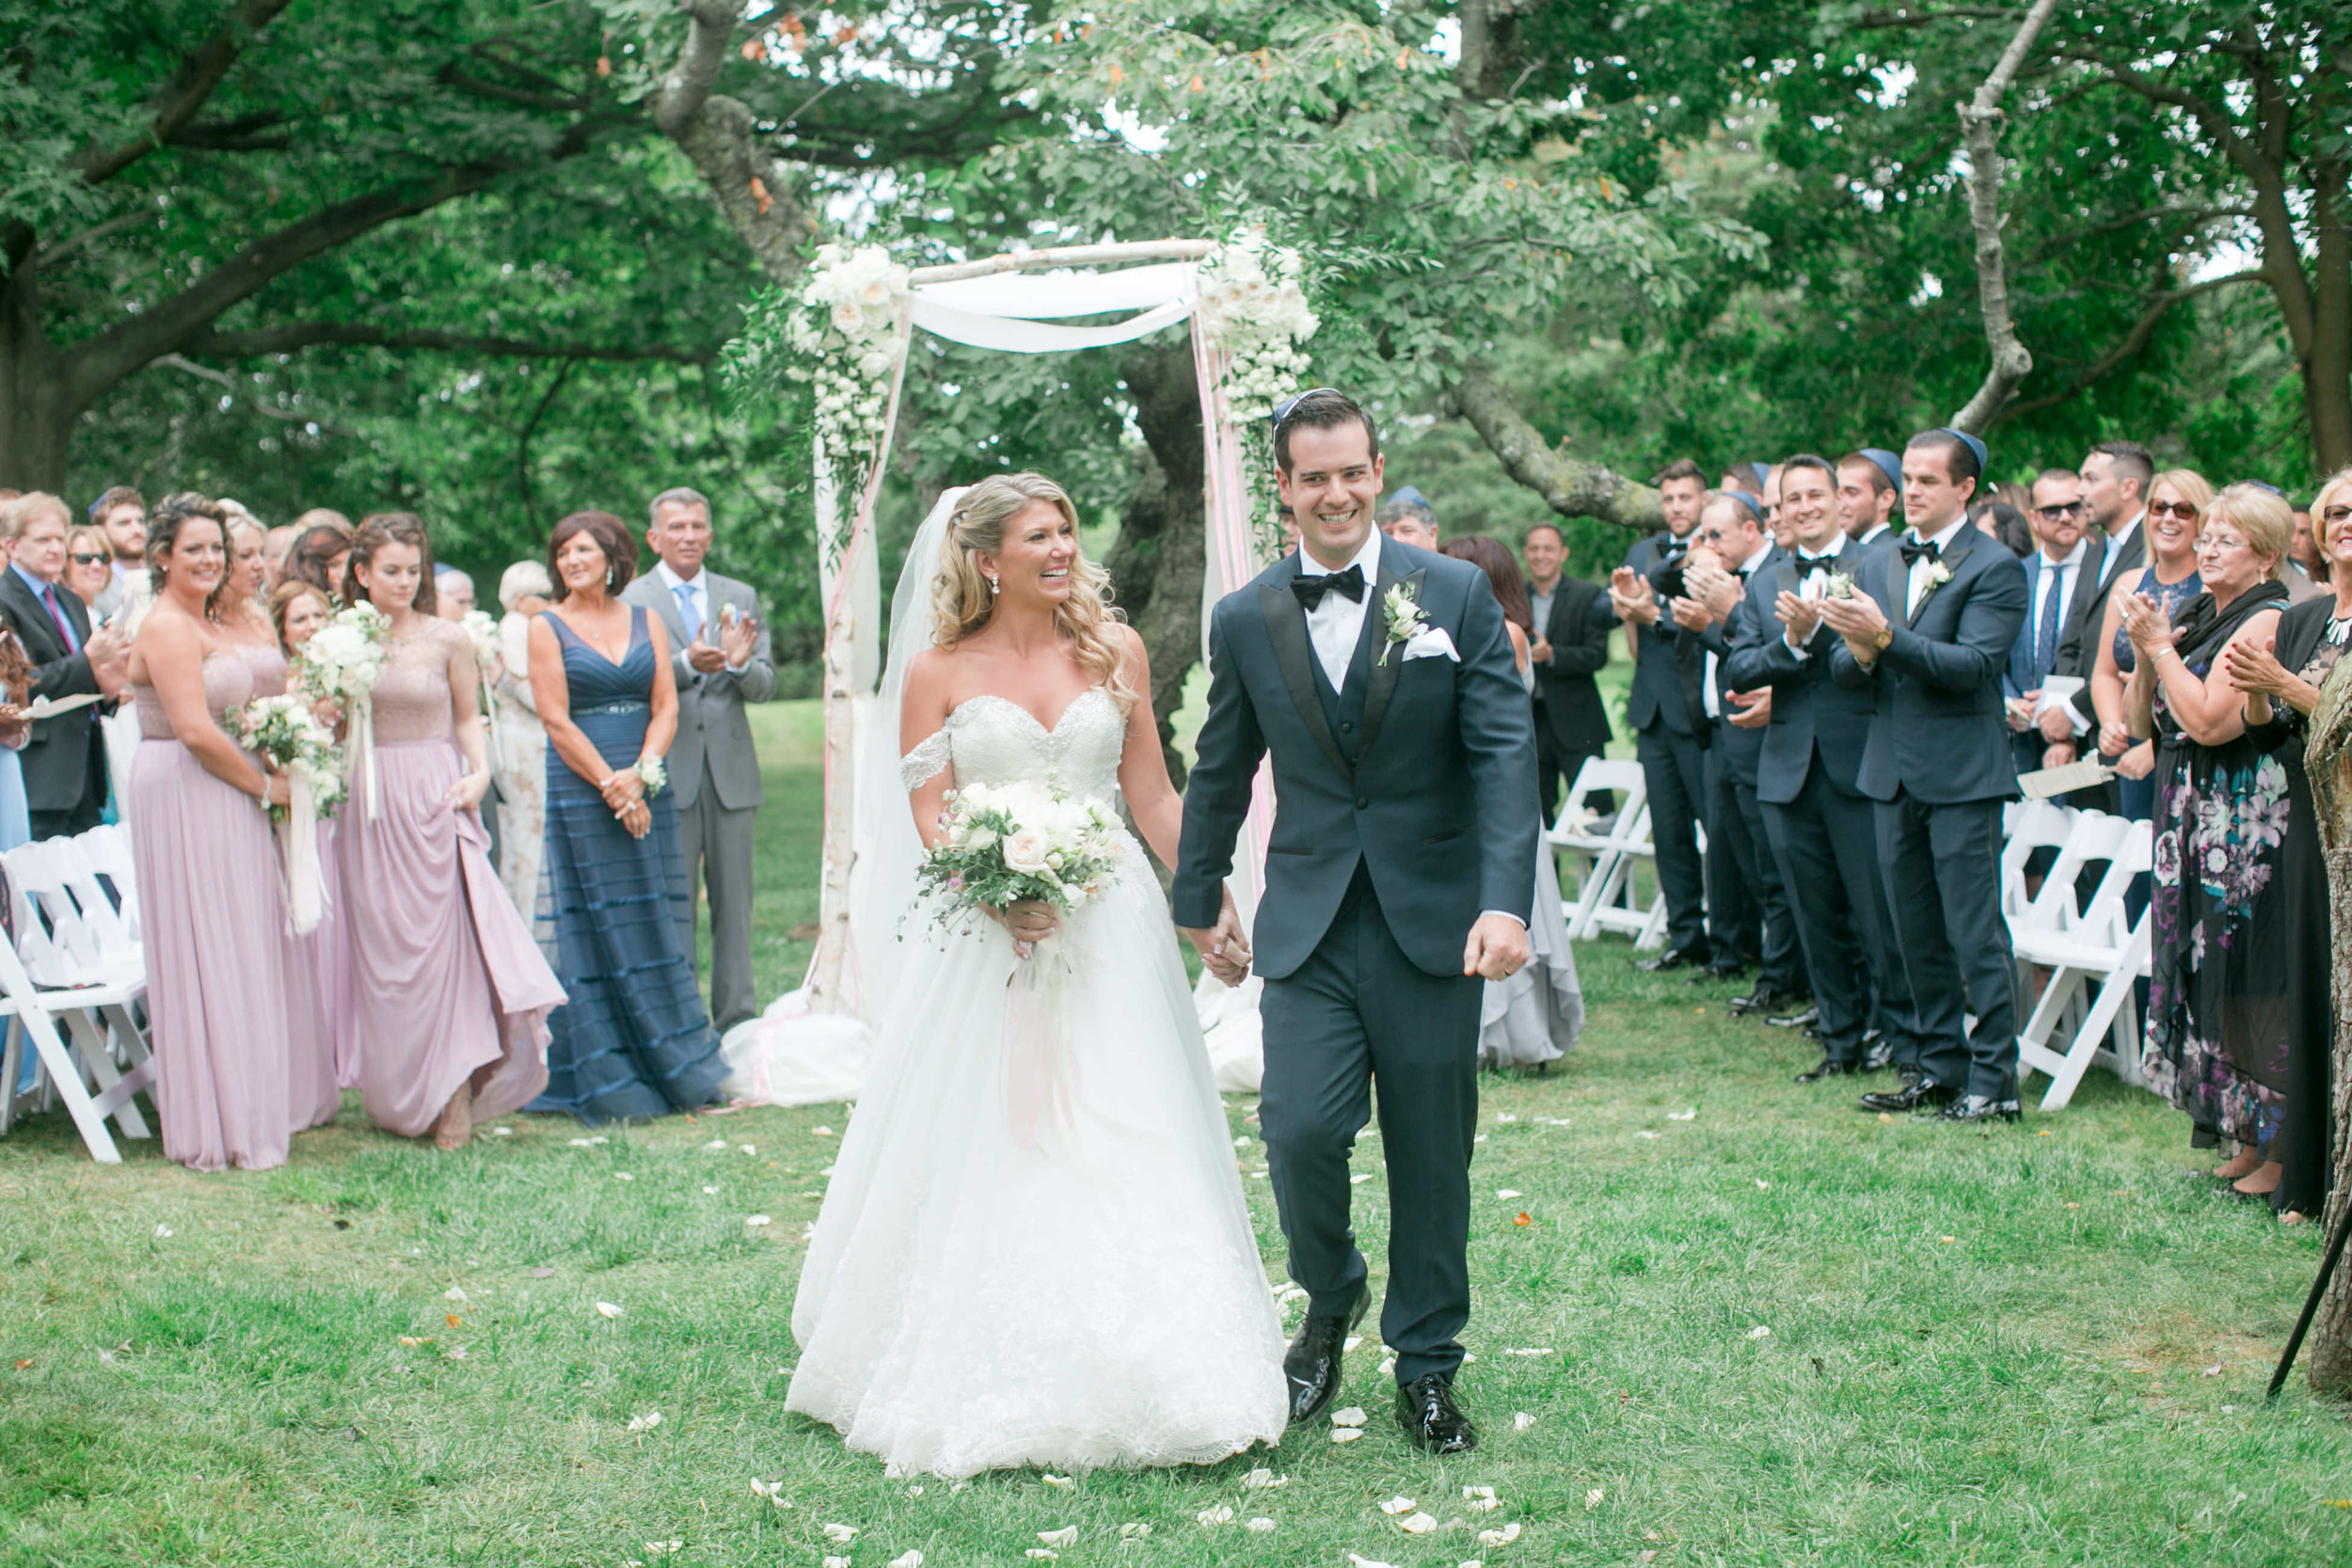 Ashley___Zac___Daniel_Ricci_Weddings___High_Res._Finals_344.jpg